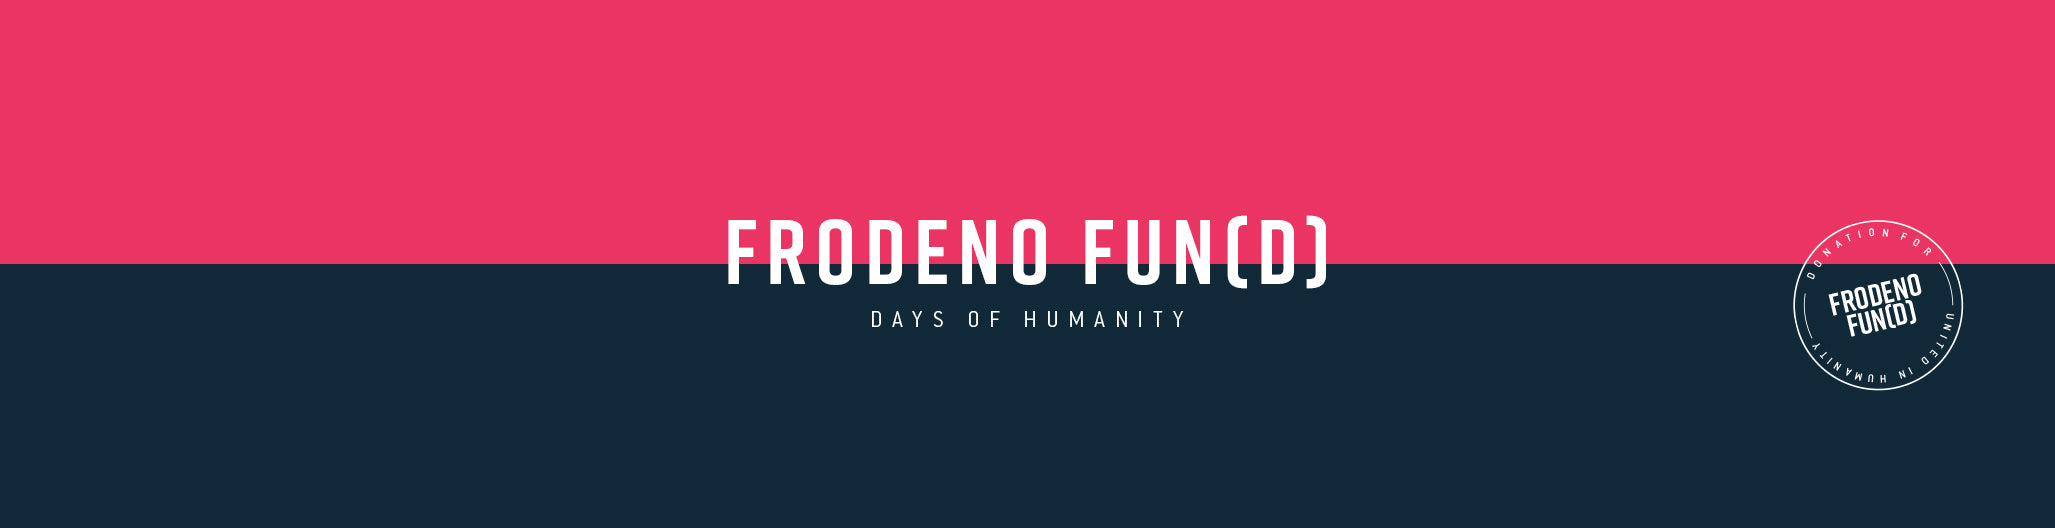 Ryzon Days of Humanity // Frodeno Fun(d) Header Image